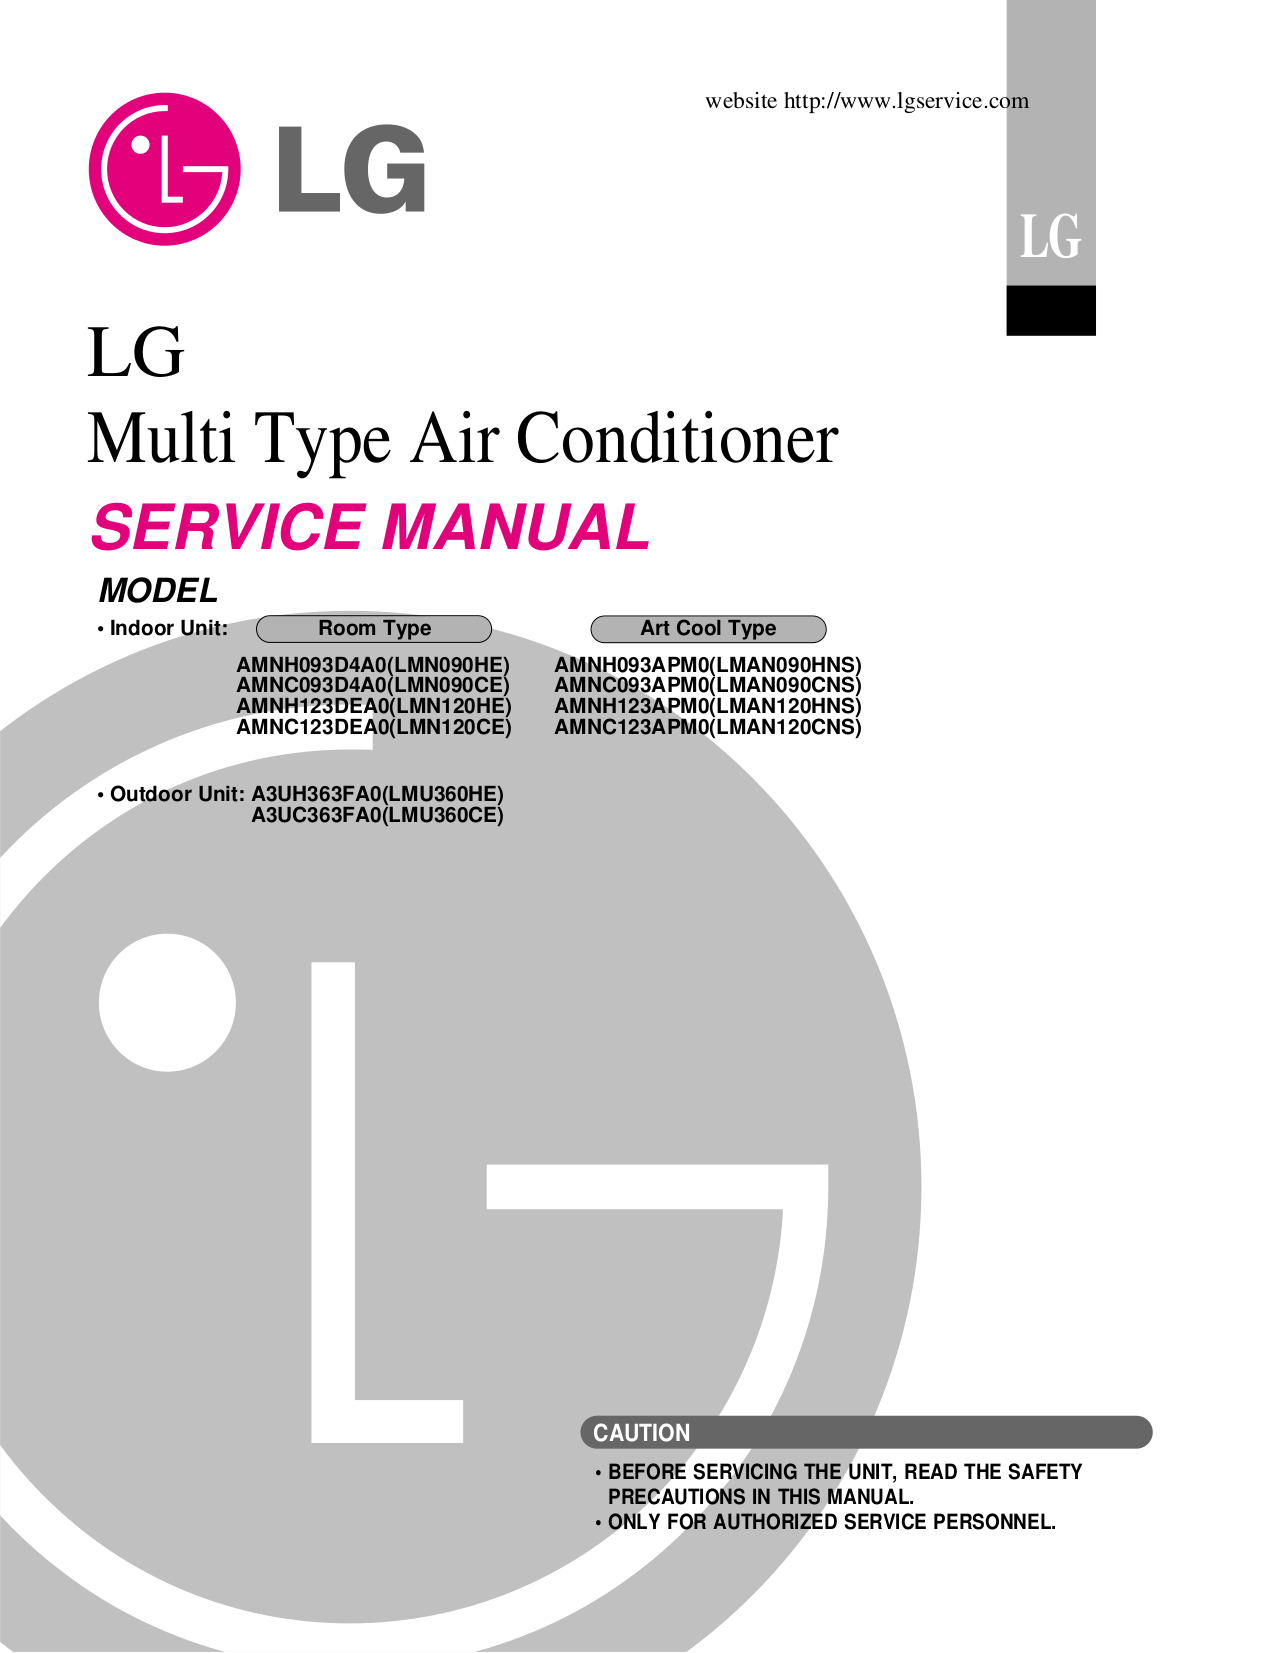 Lg aircon manual ebook array service manual lg pdf u2013 our ebook collection rh foolishphilosophy com fandeluxe